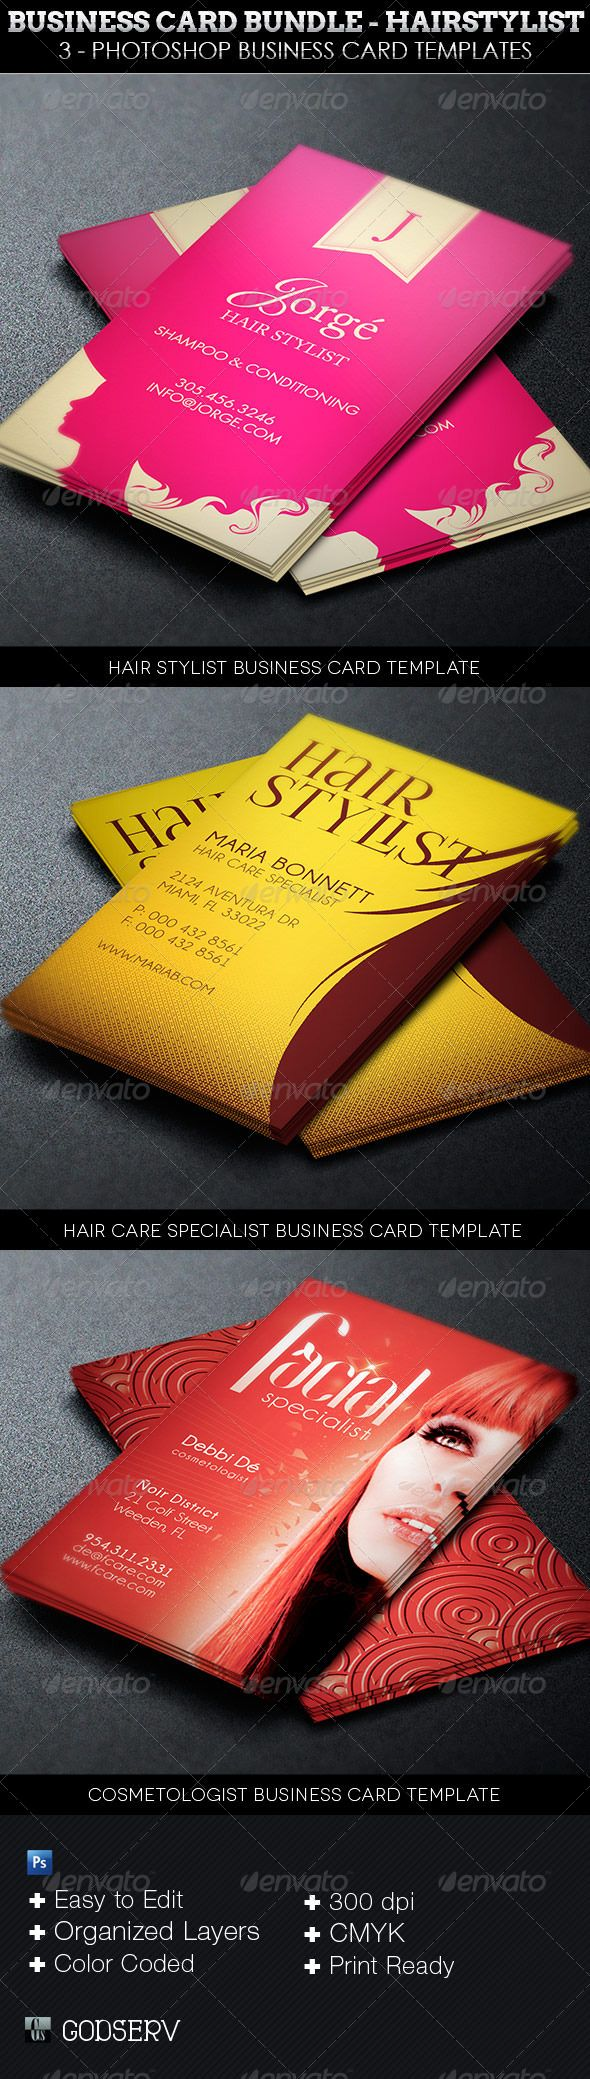 13 best business cards images on pinterest business cards business card template bundle hairstylist 1100 the corporate business card template bundle hairstylist magicingreecefo Choice Image